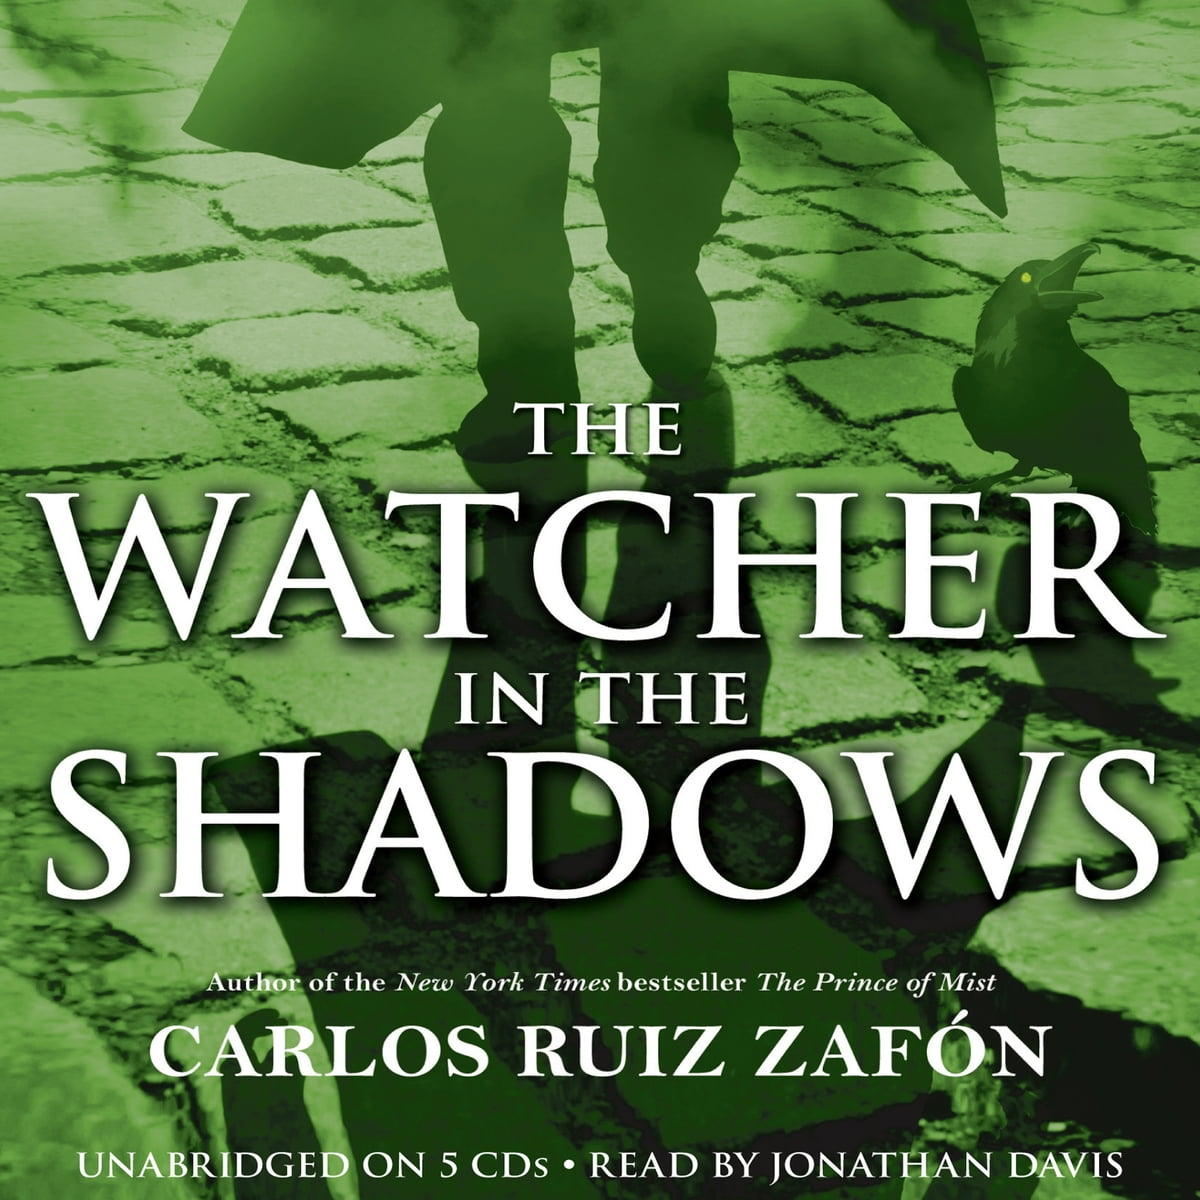 The Watcher in the Shadows Audiobook by Carlos Ruiz Zafon ...